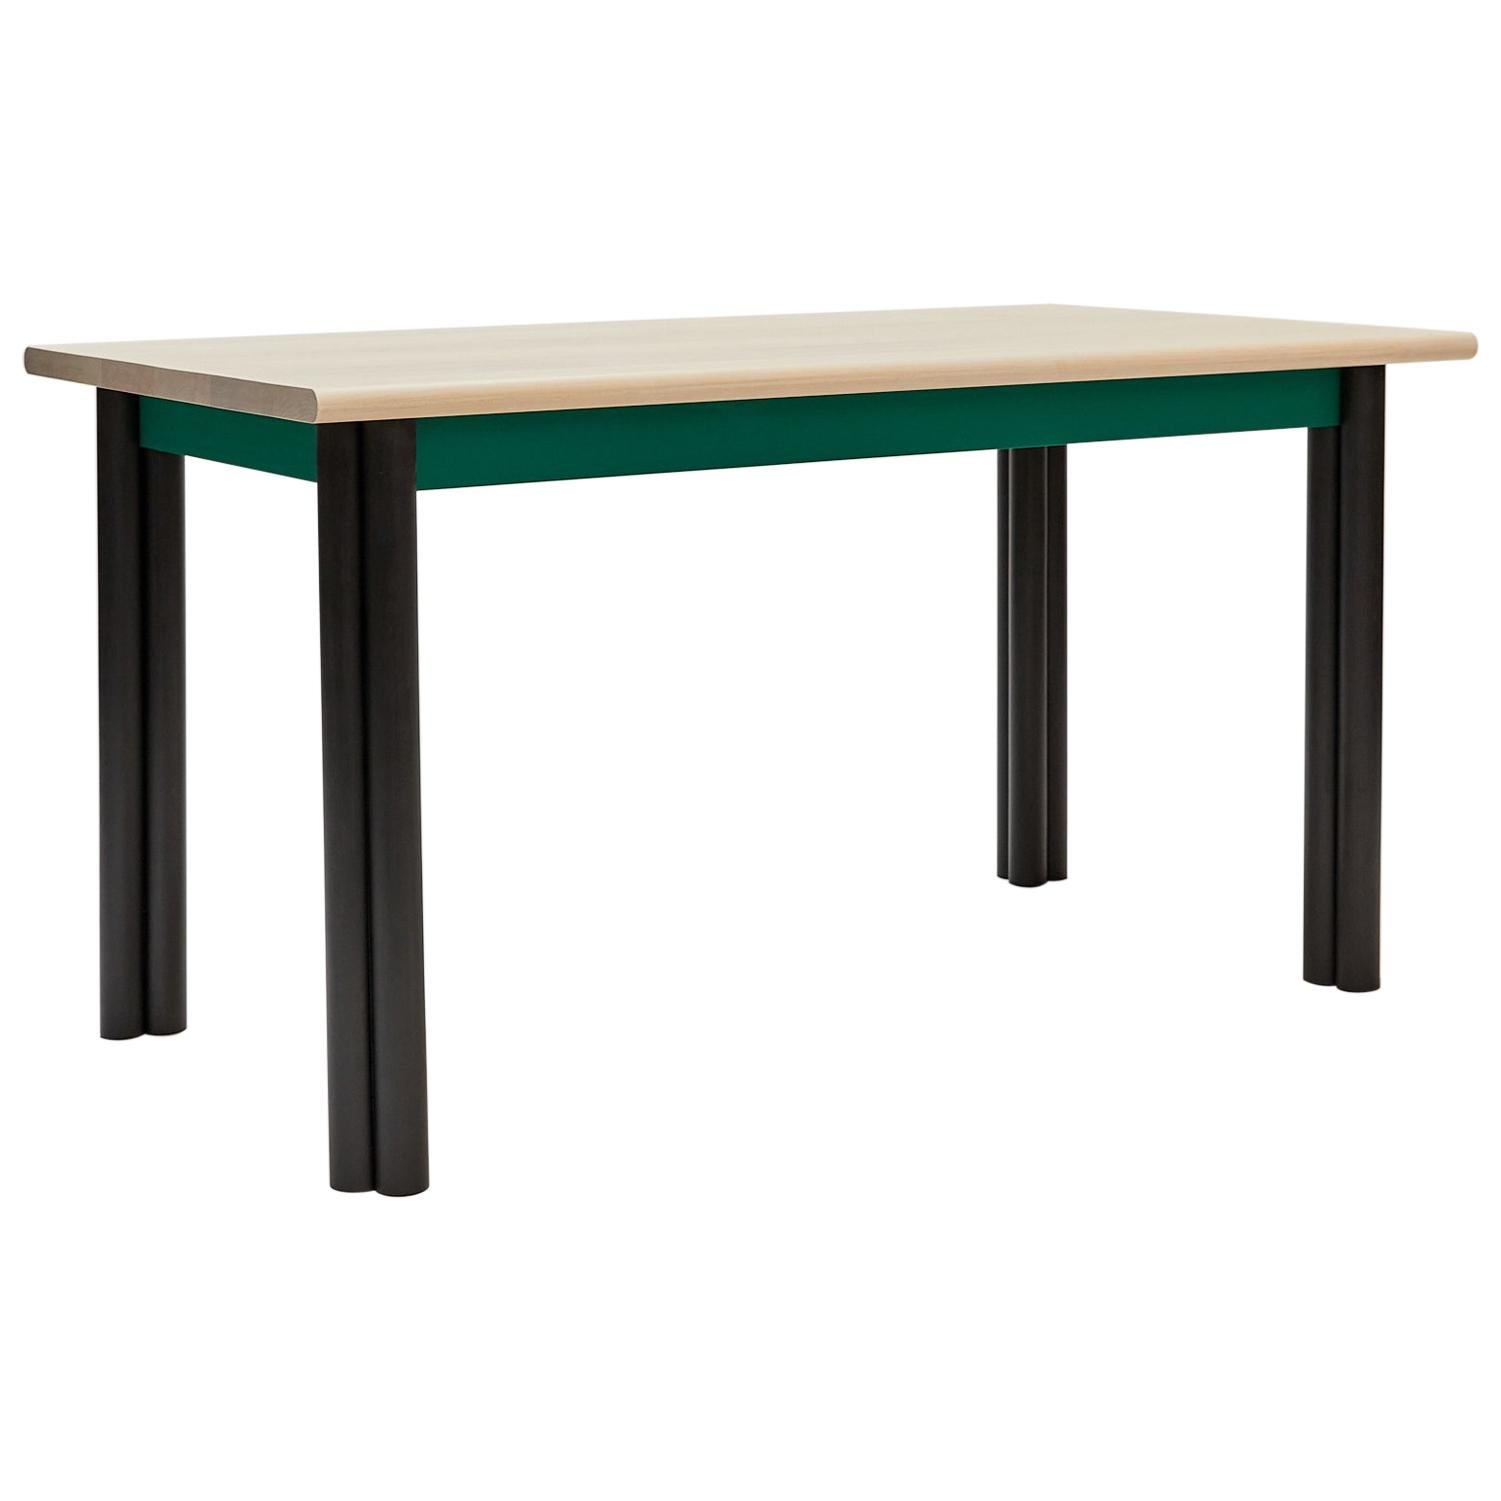 Tripolo Dining Table in Bleached and Ebonized Maple